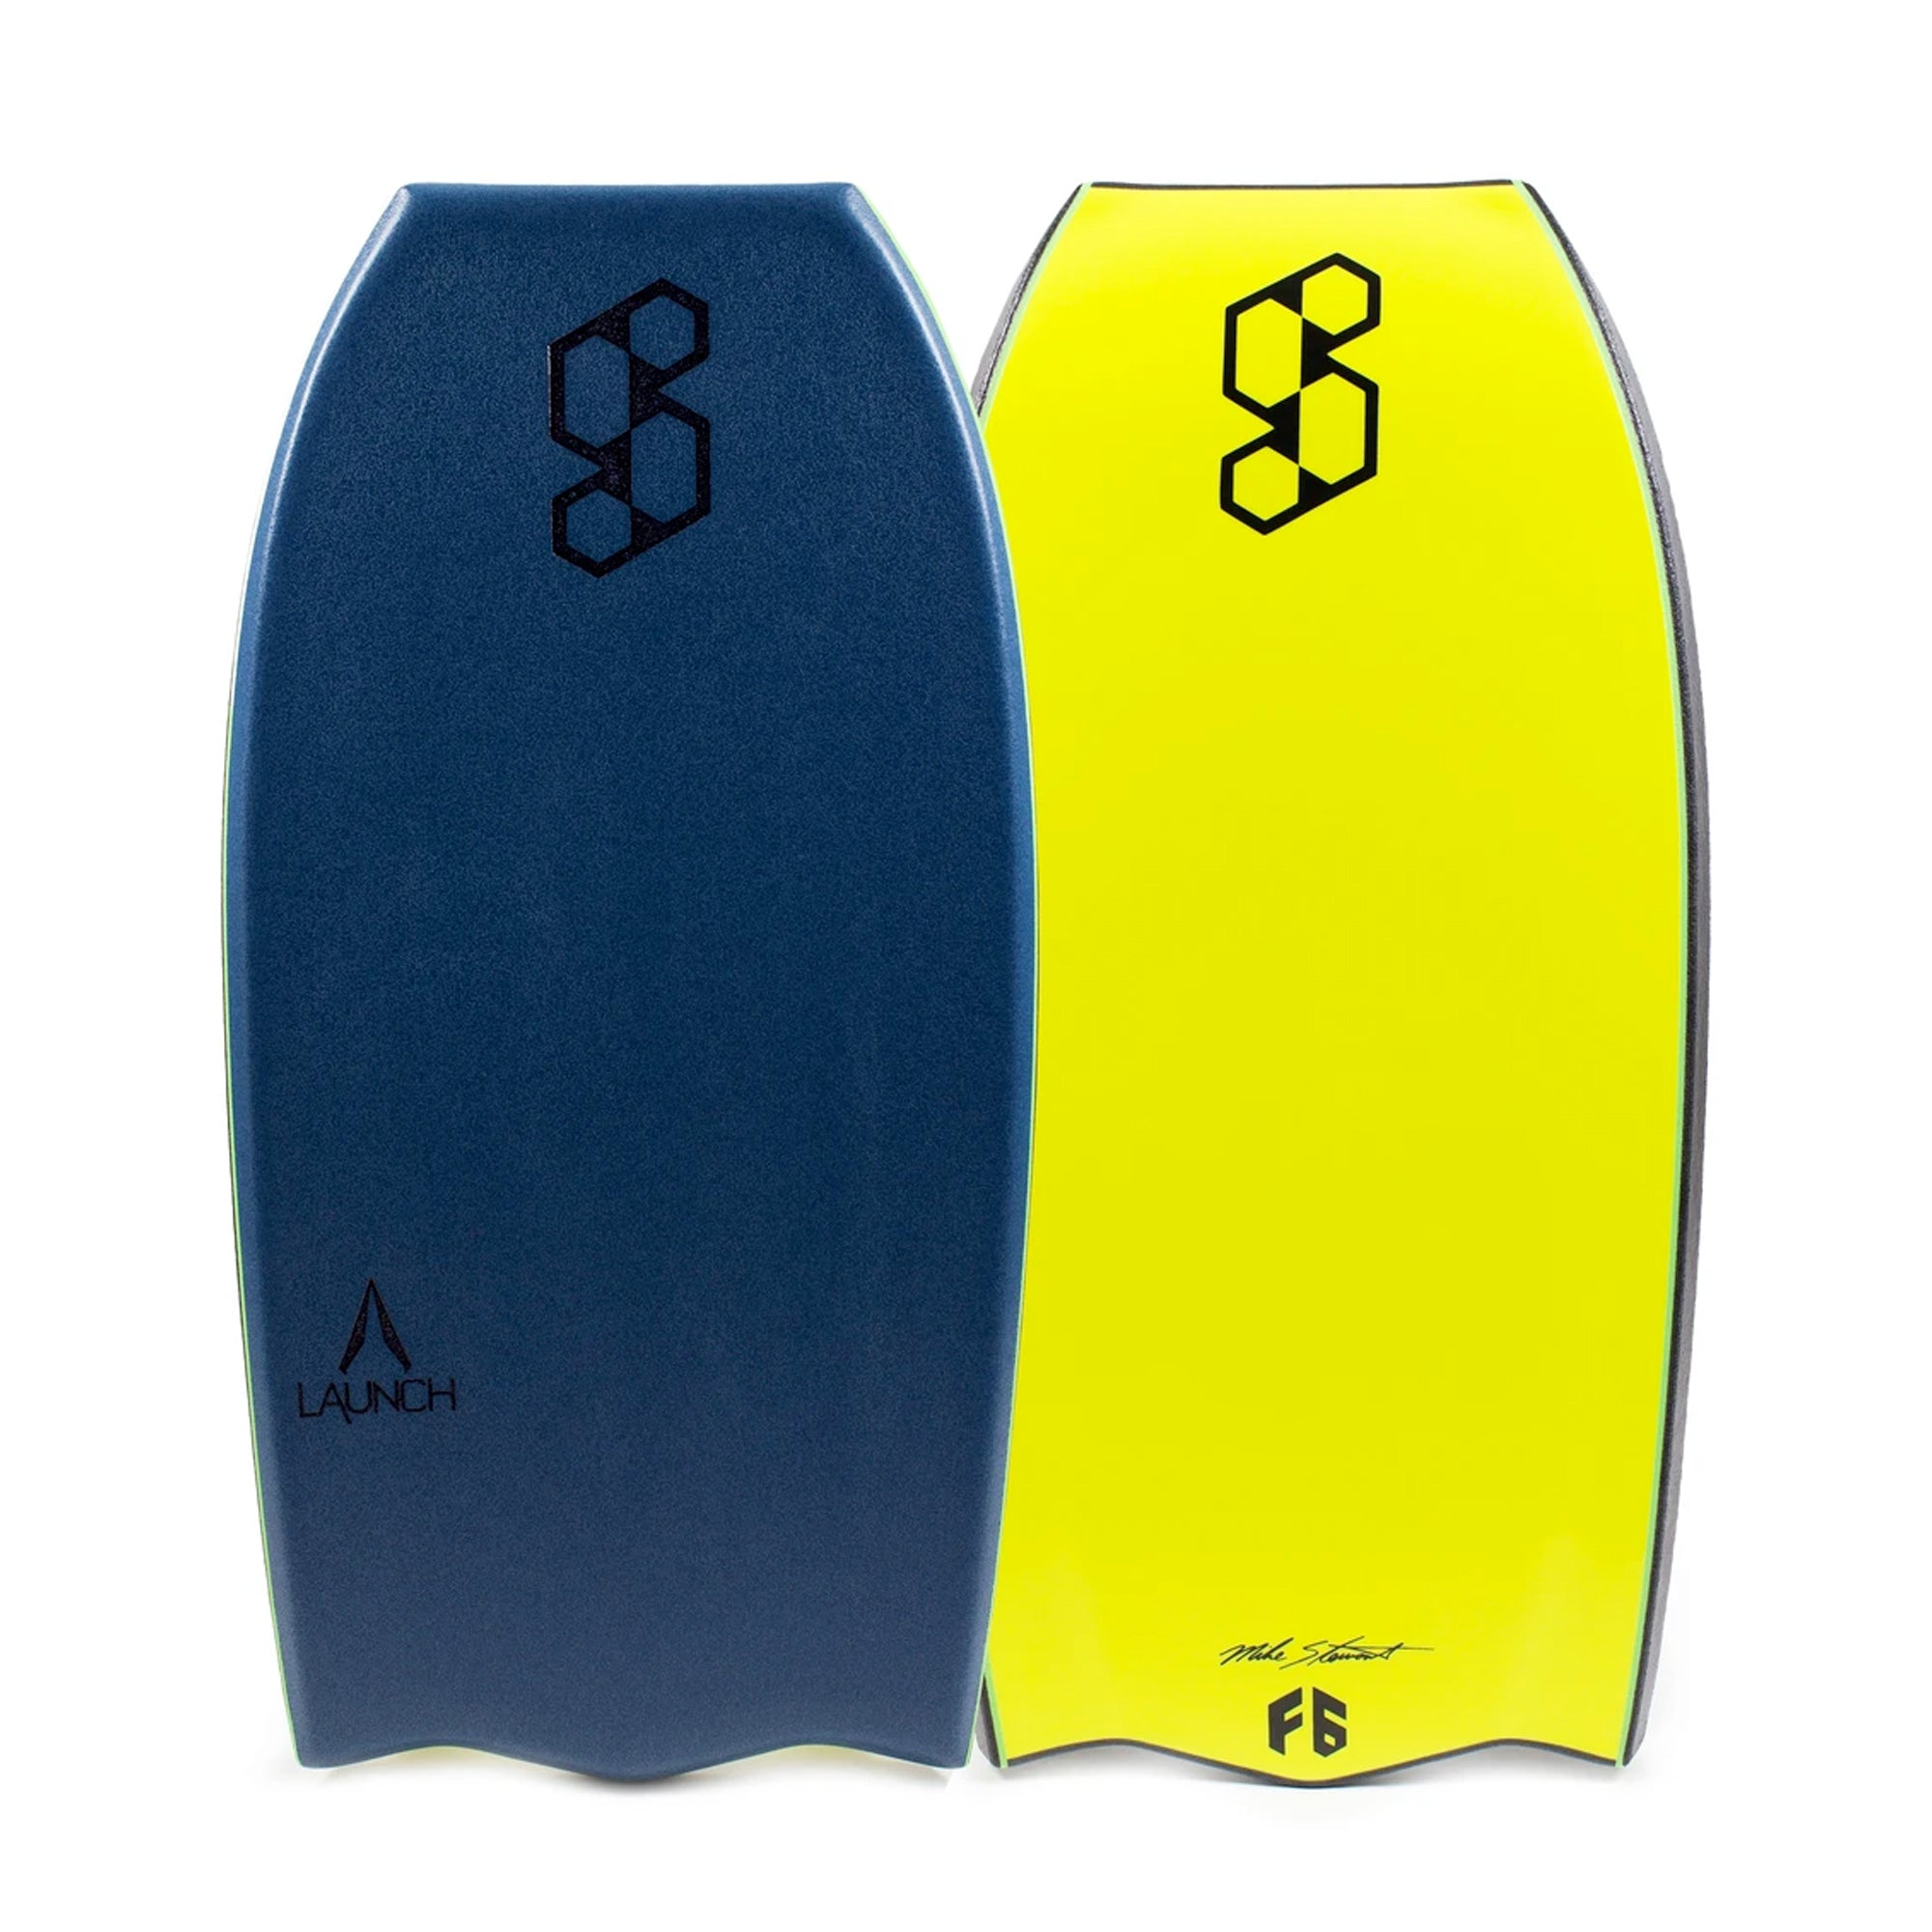 "Mike Stewart Science Launch Tech Delta Tail 42"" Bodyboard - Deep Sea Green/Black/Fluro Yellow"